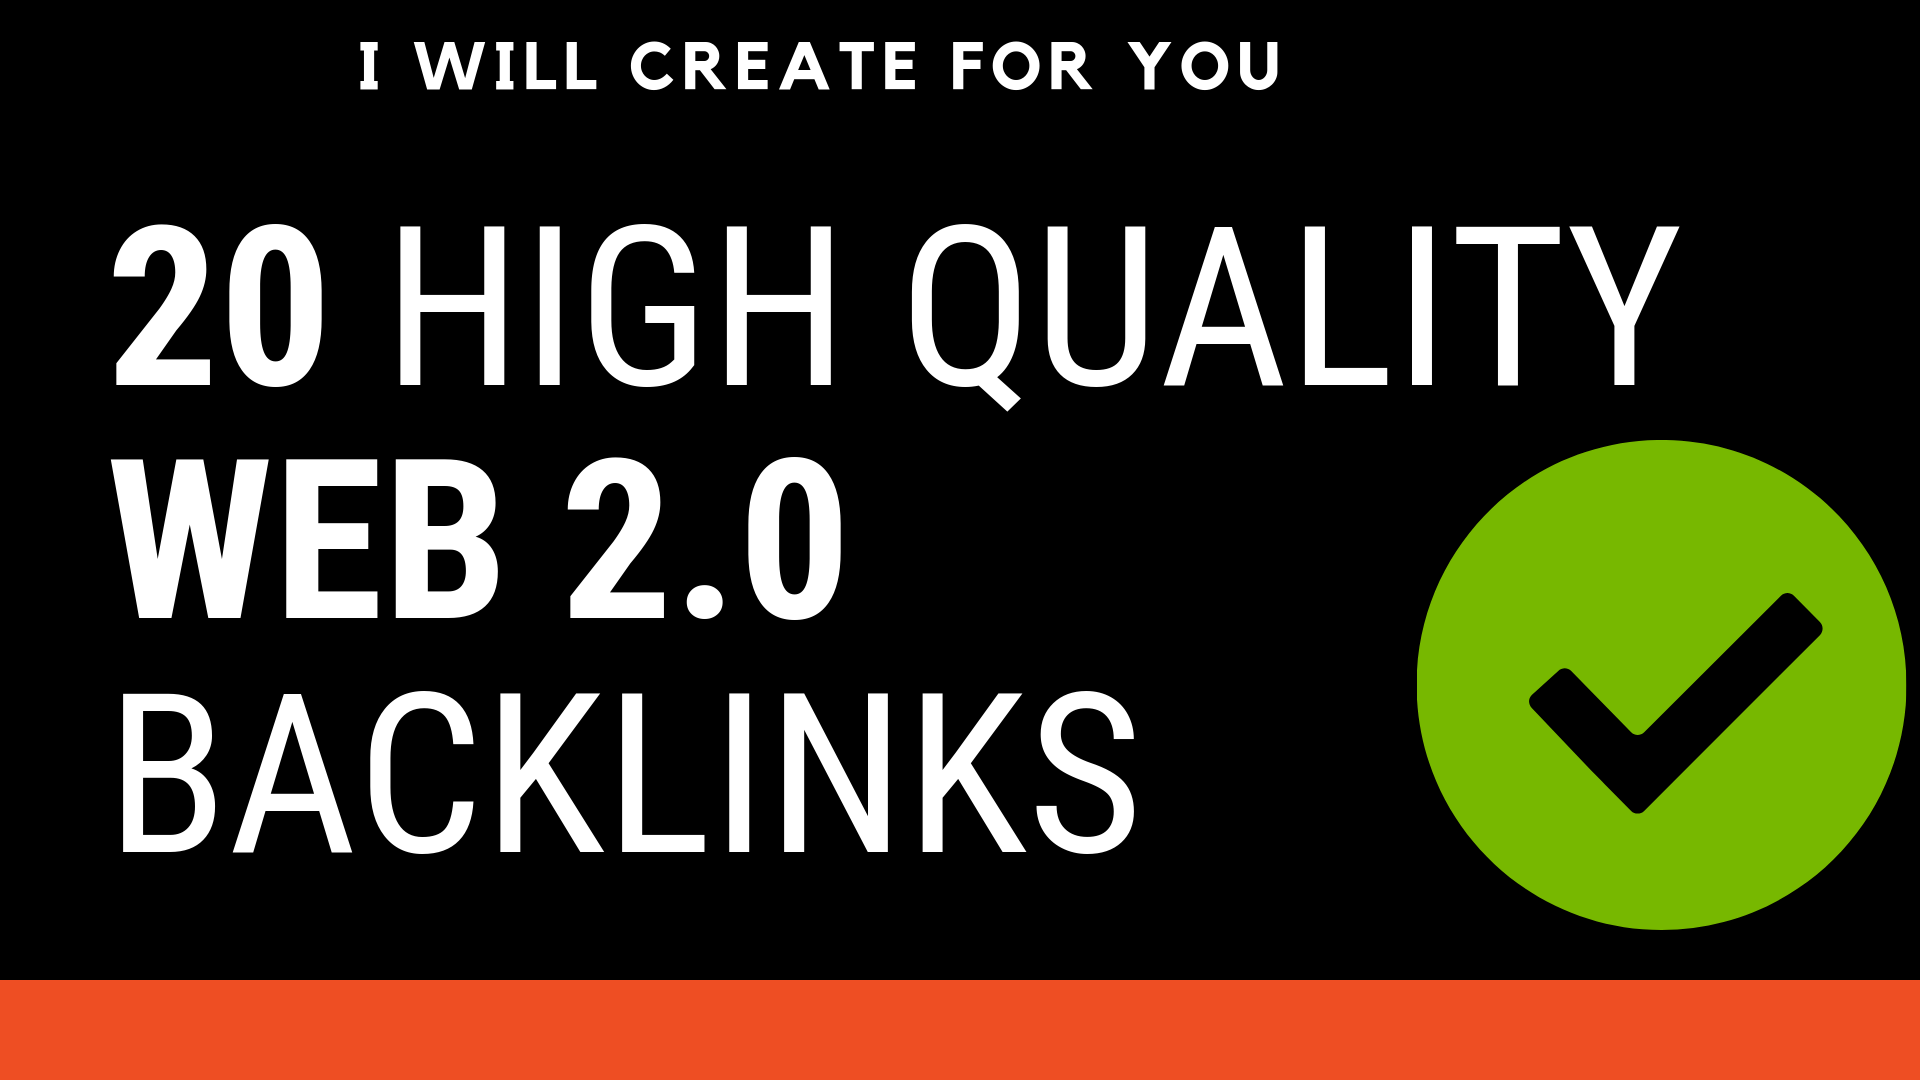 i will create 20 high quality web 2.0 backlinks